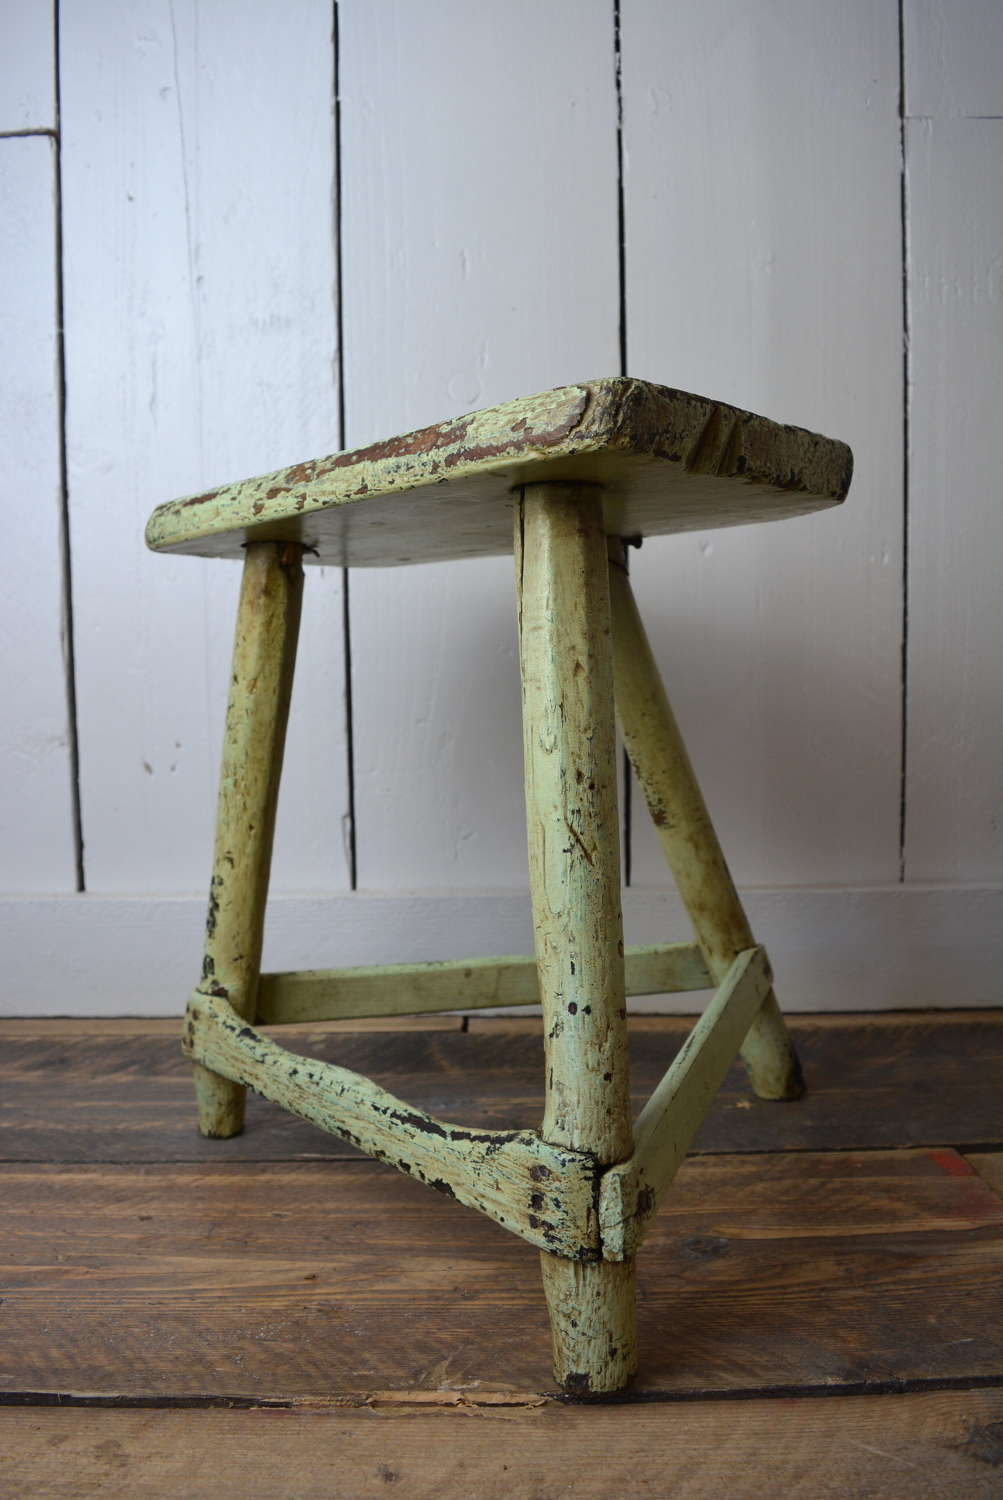 19TH CENTURY MILL WORKERS STOOL